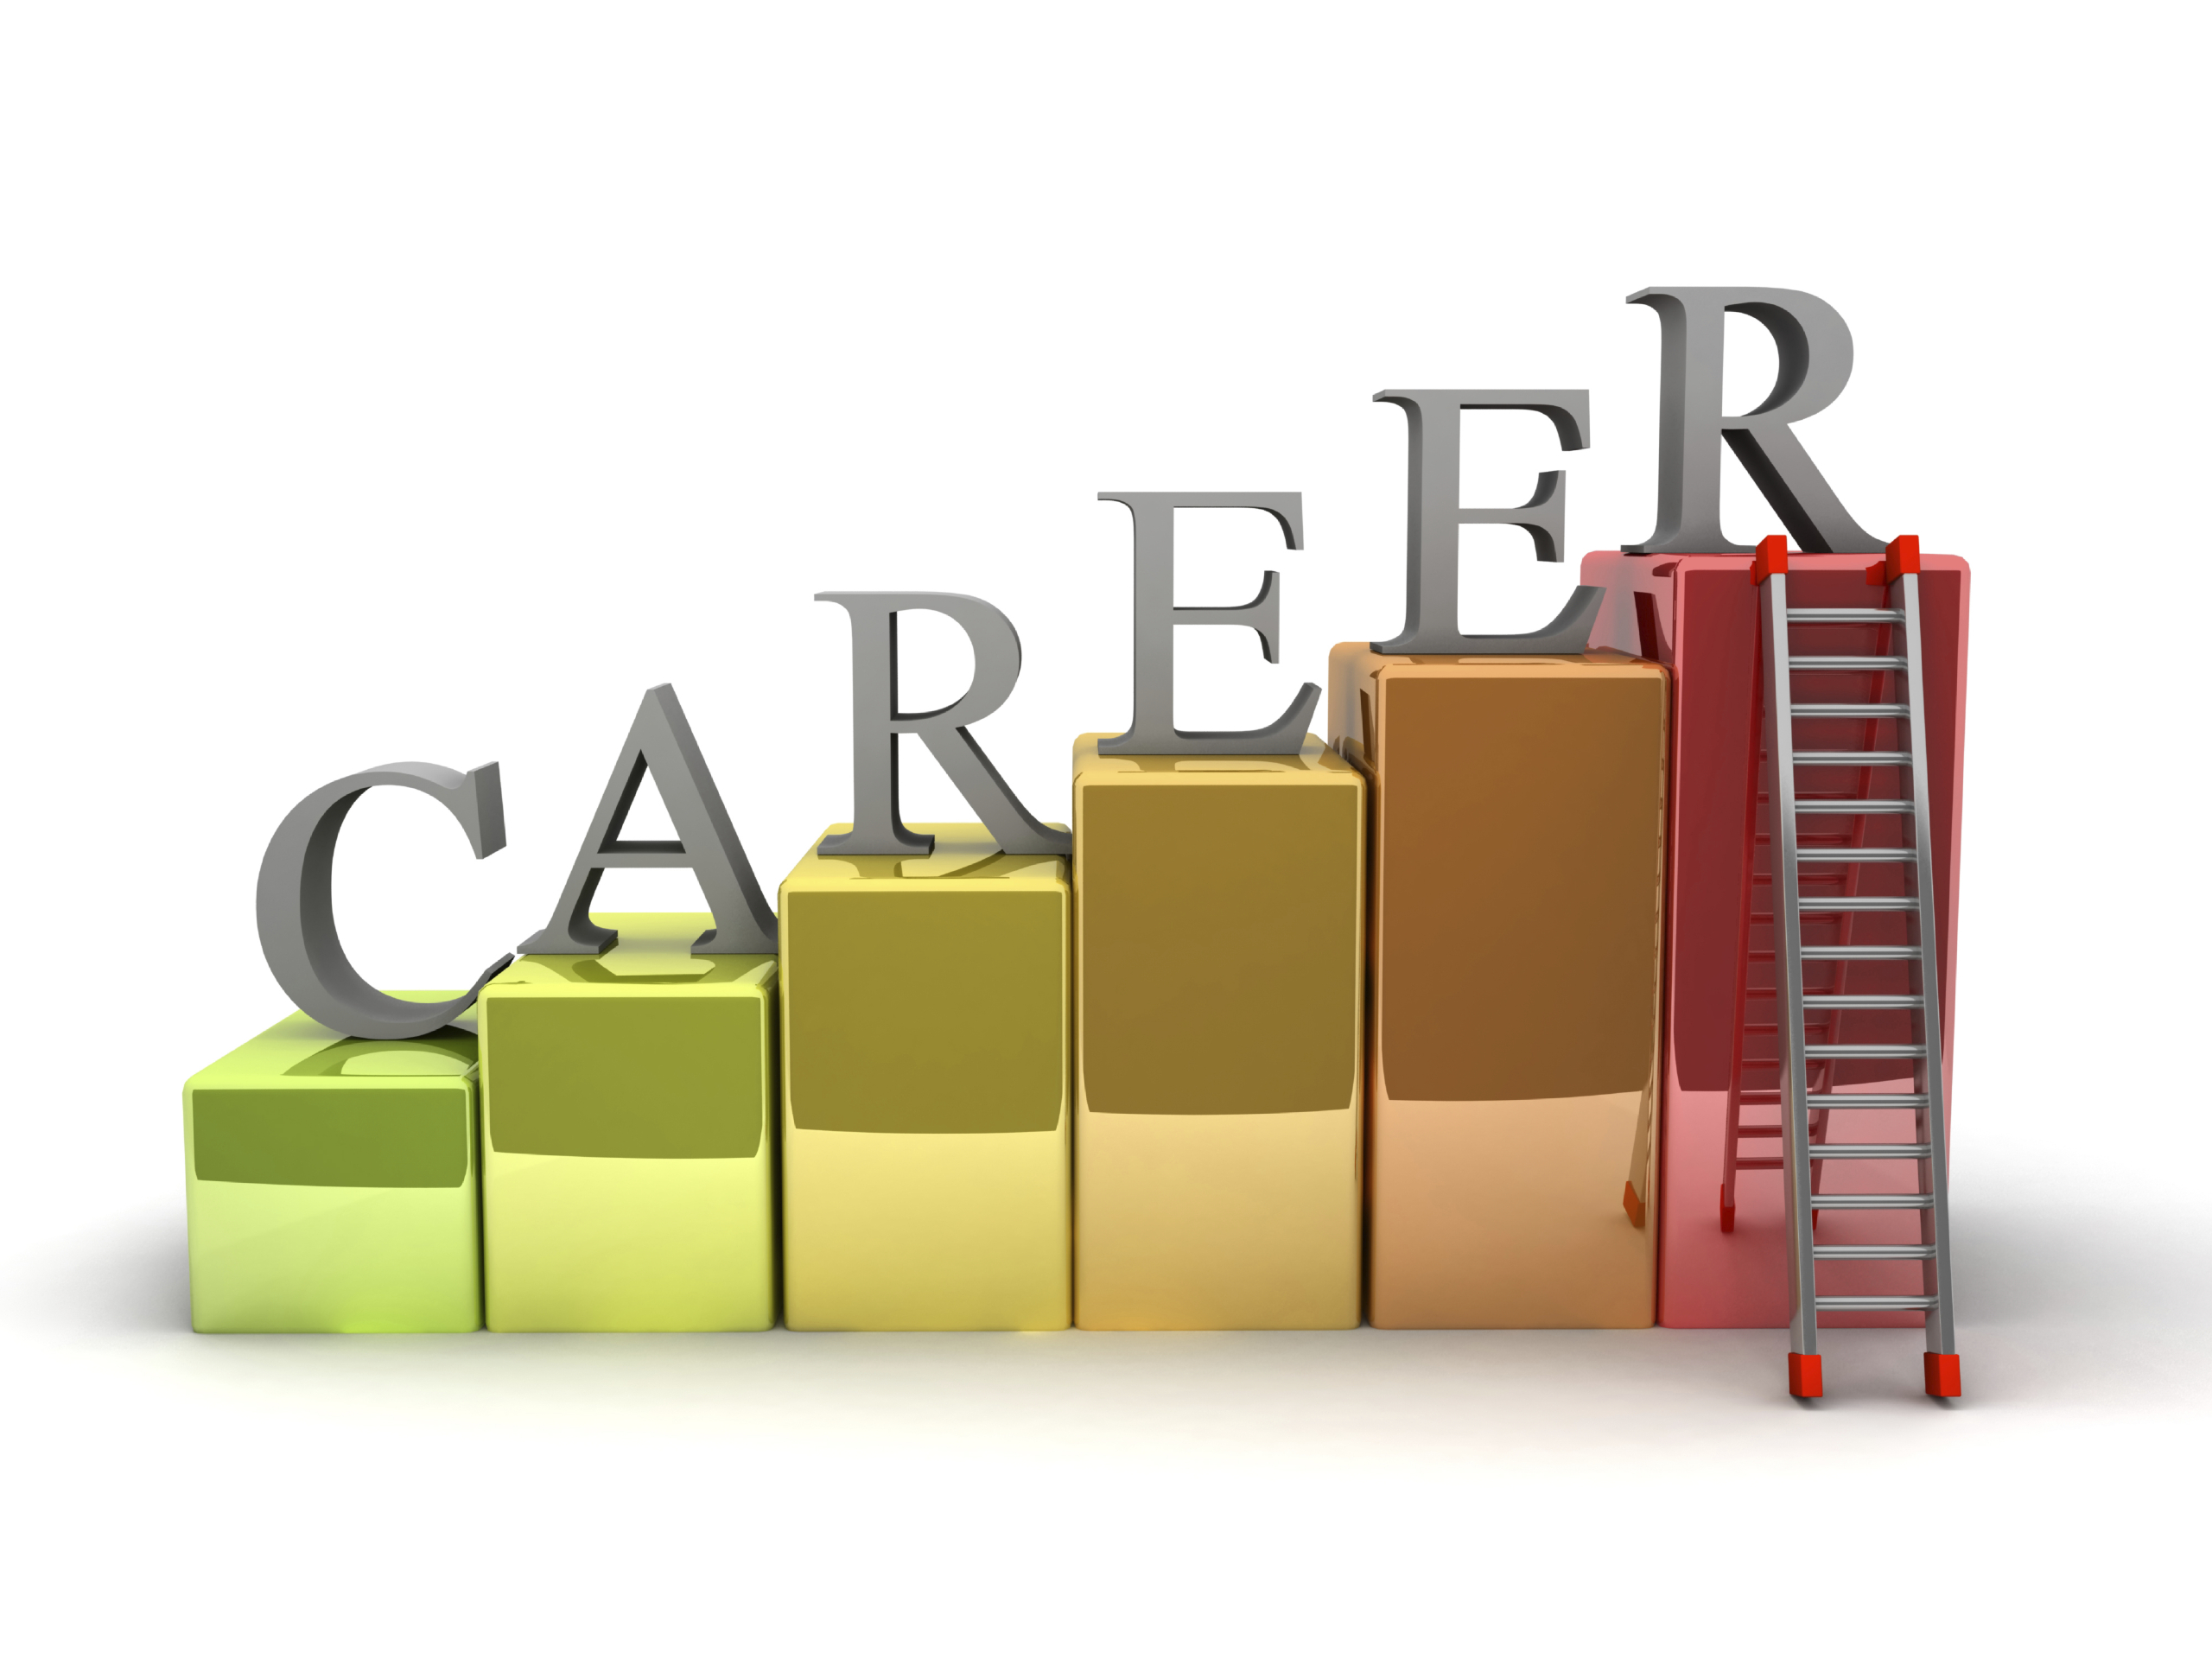 growth clipart career ladder